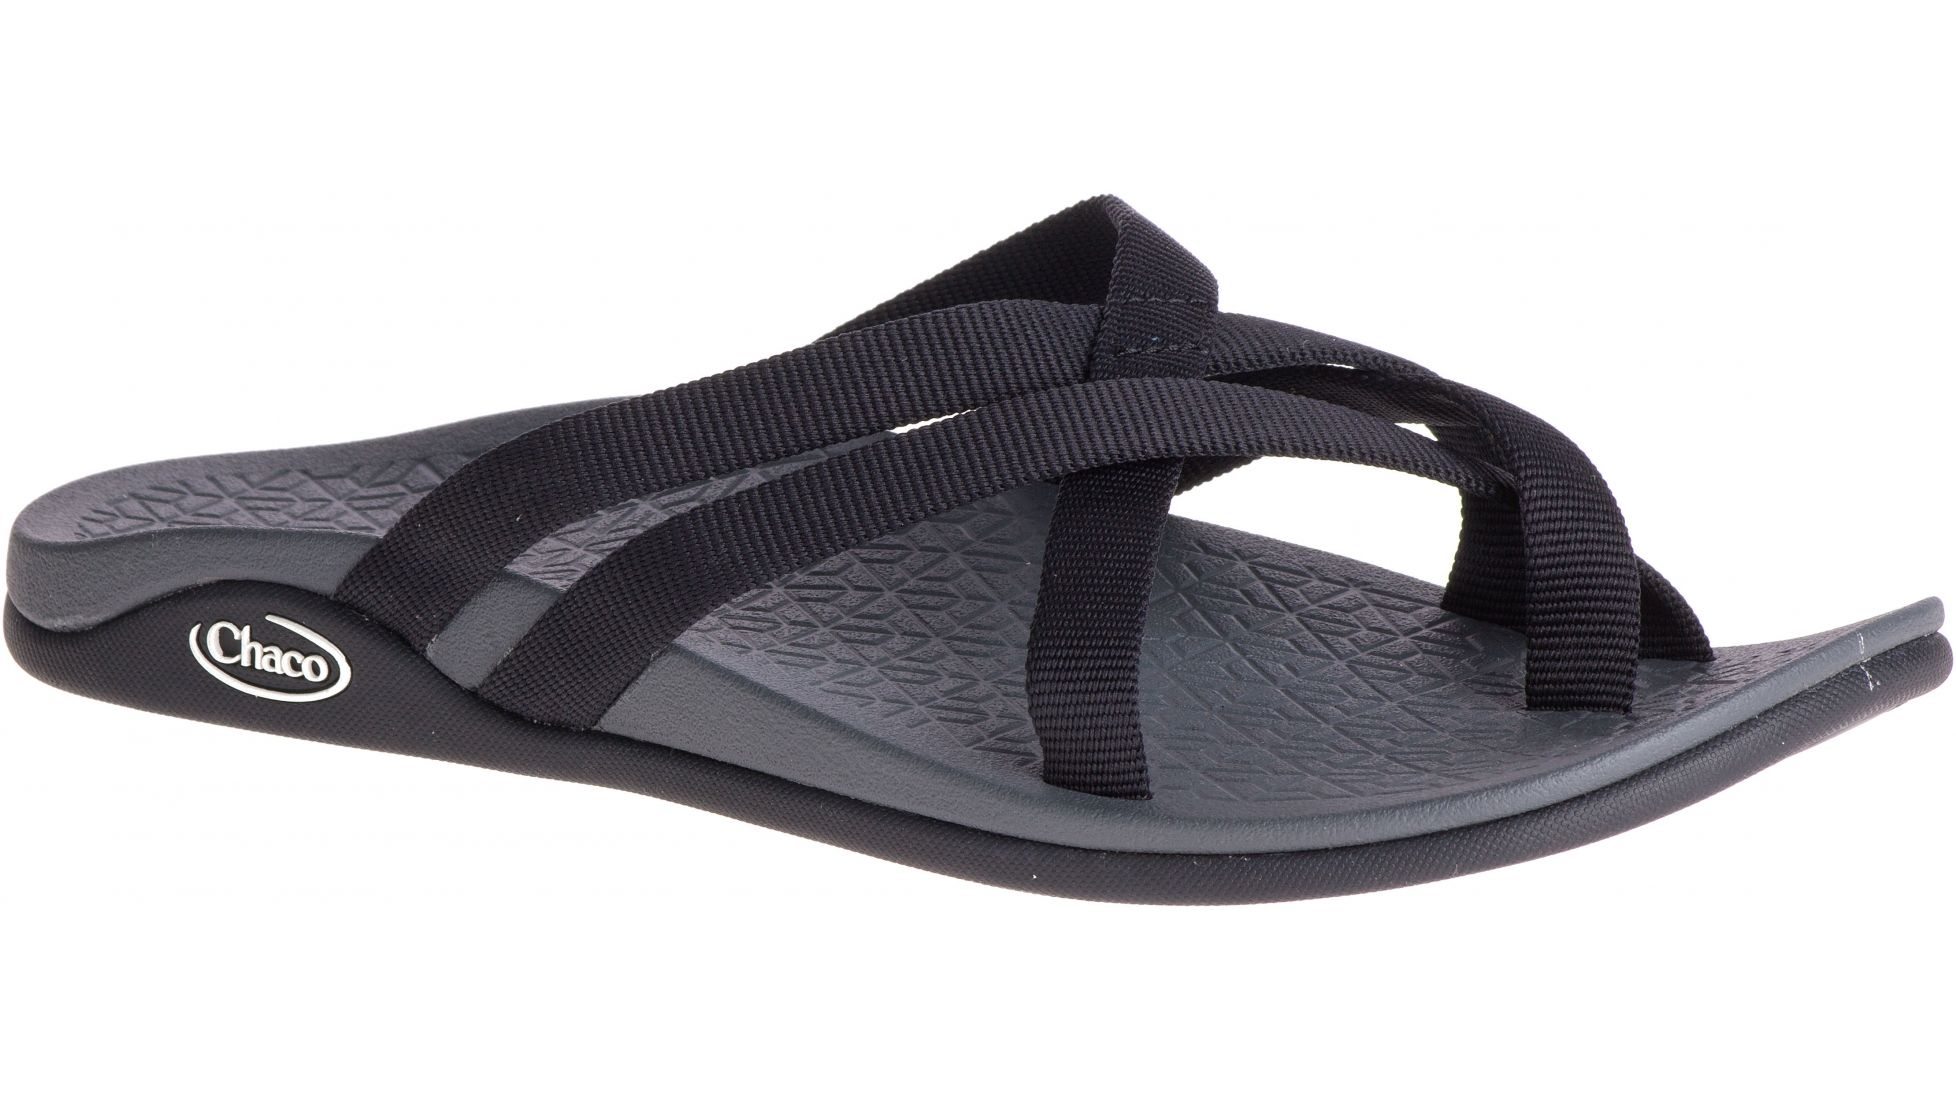 276f71984a1d Image is loading Chaco-Womens-Temest-Cloud-Open-Toe-Casual-Black-